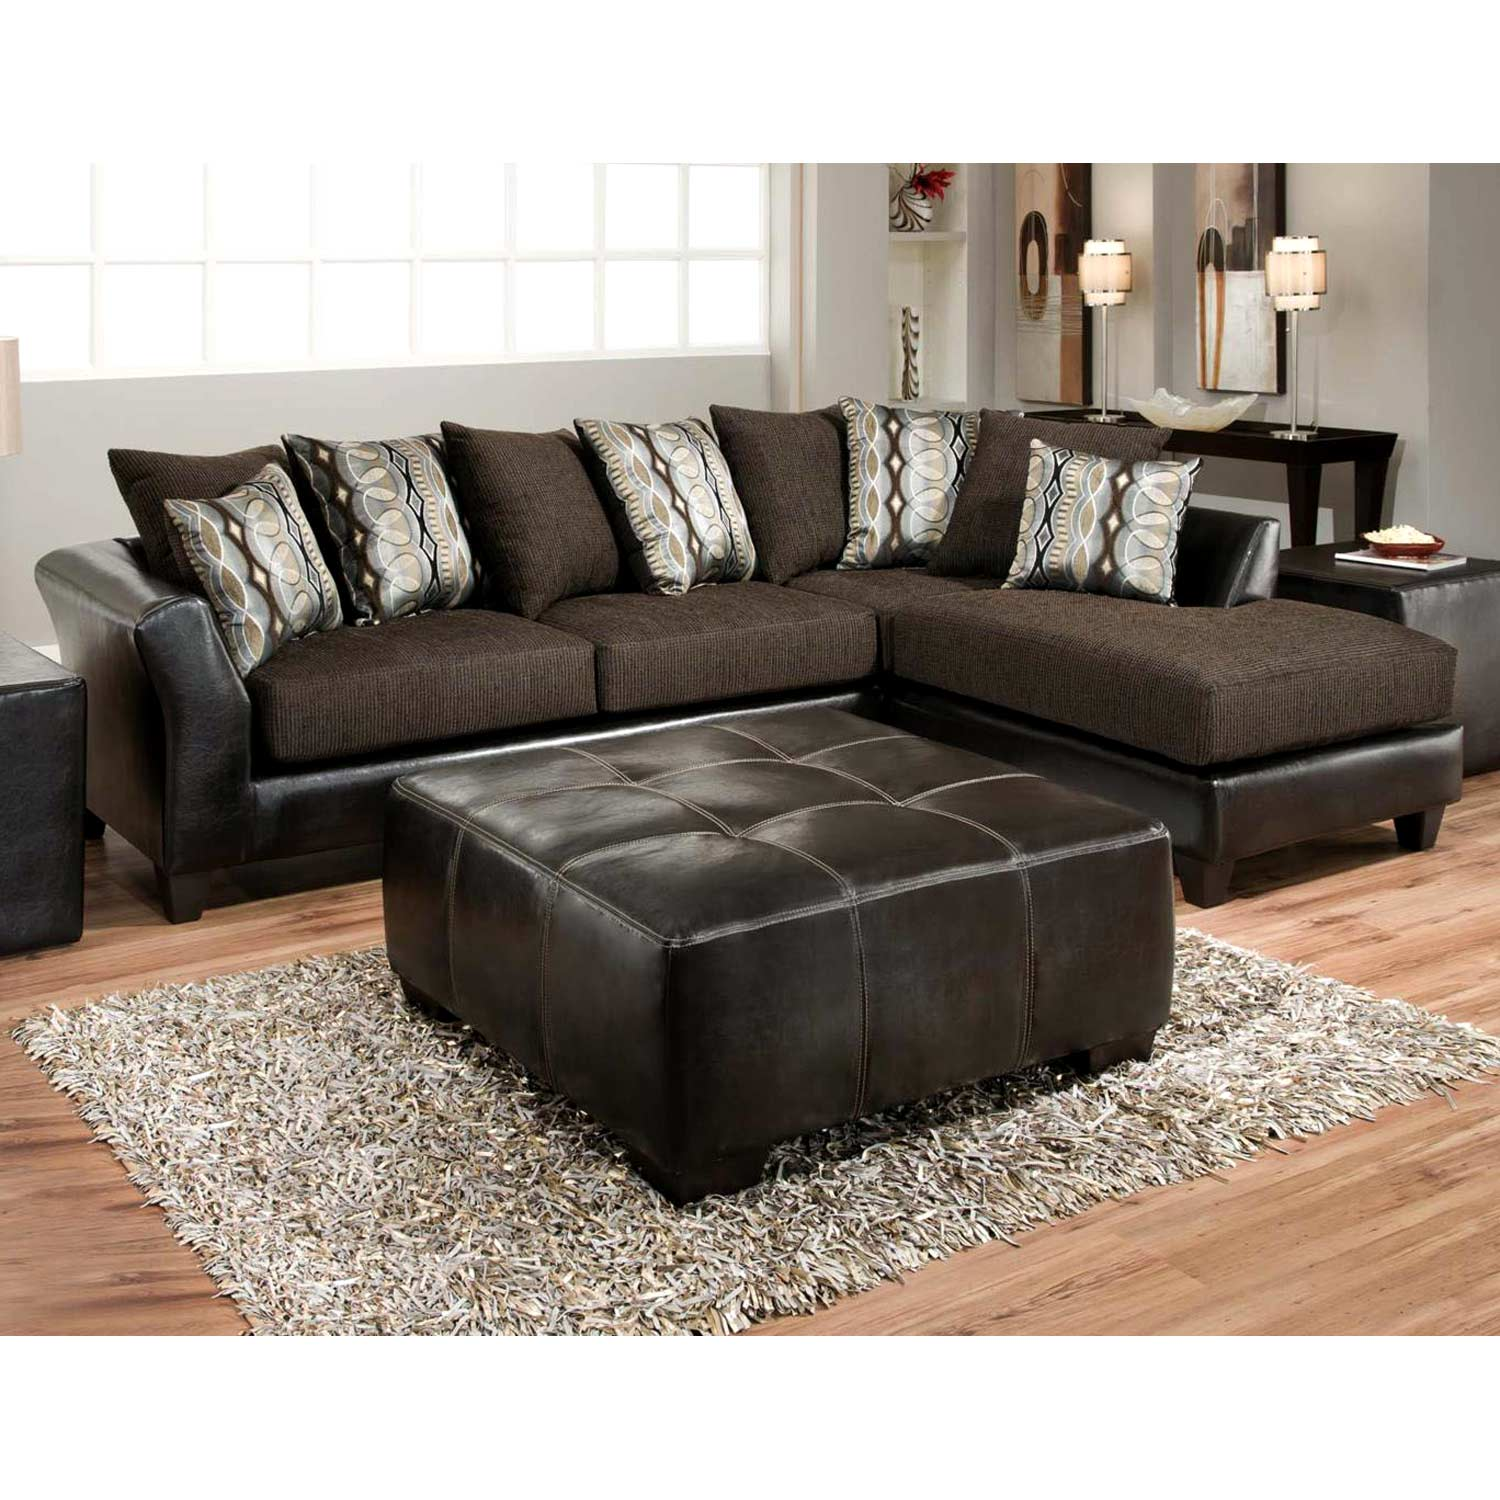 zeta sofa chaise sectional jefferson chocolate. Black Bedroom Furniture Sets. Home Design Ideas